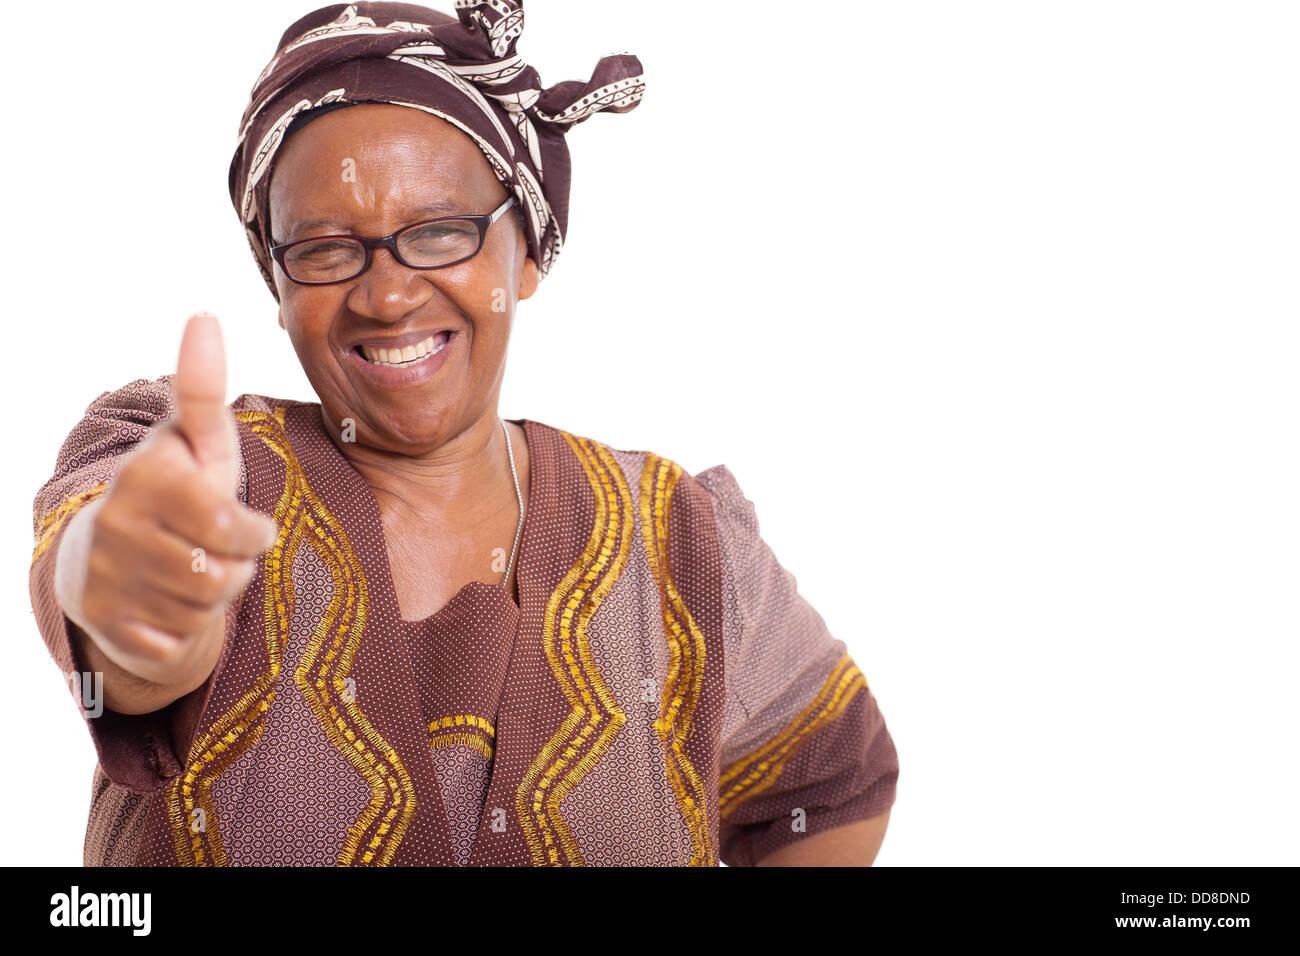 mature African woman with happy smile giving thumbs up on white background - Stock Image